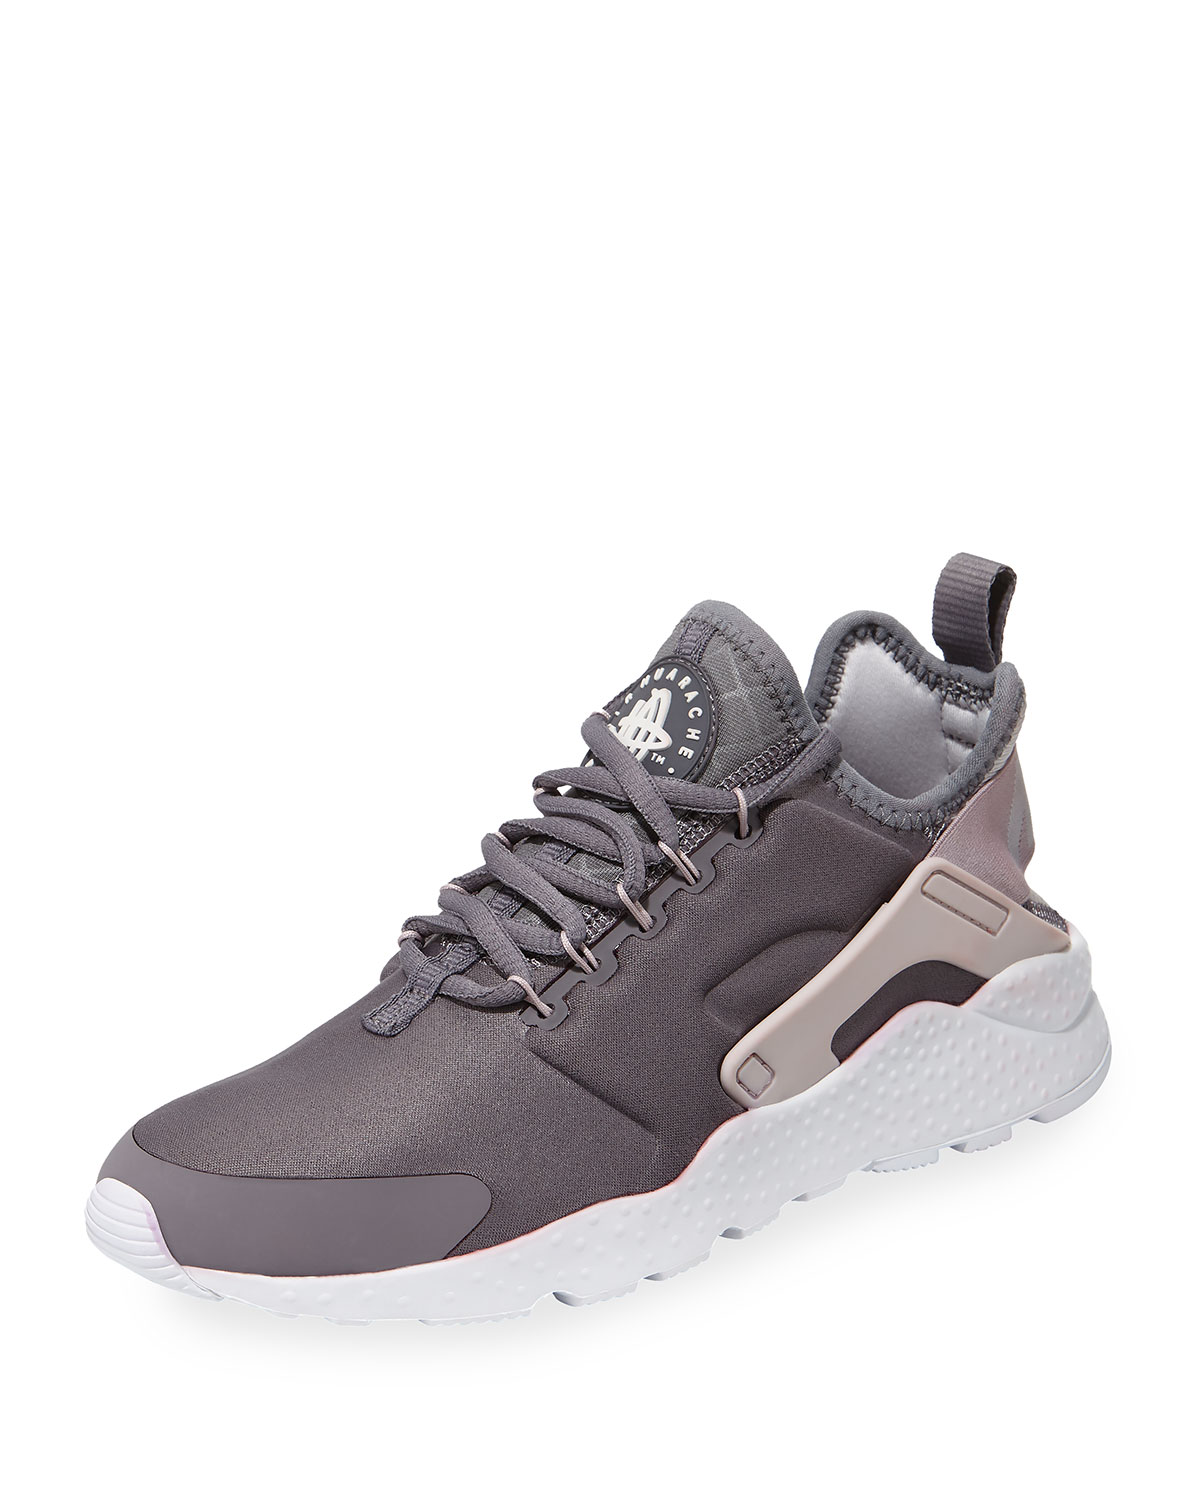 check out c73fd 467aa Nike Women's Air Huarache Run Ultra Sneakers | Neiman Marcus